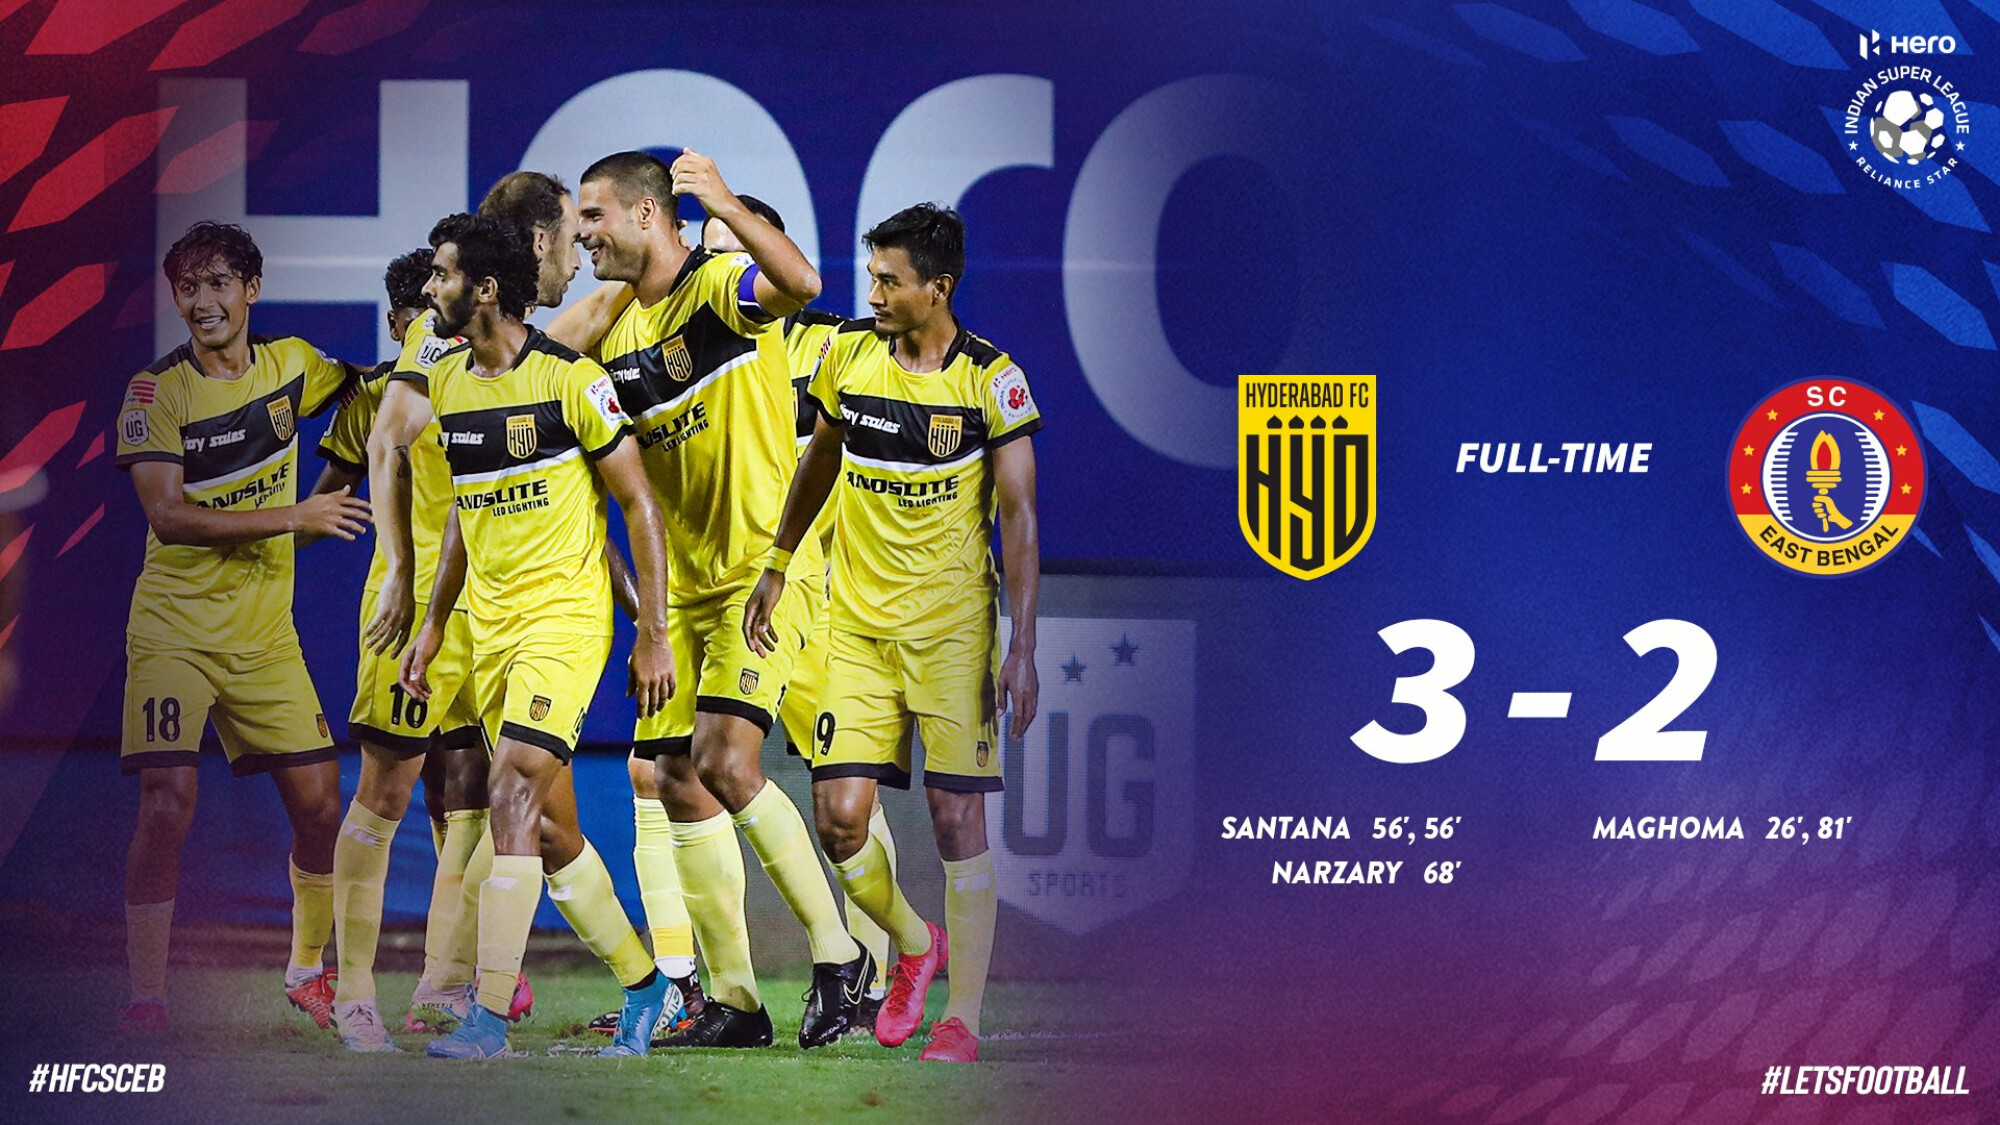 ISL 2020-21 Hyderabad FC vs East Bengal SC: Hyderabad win, East Bengal misery continues